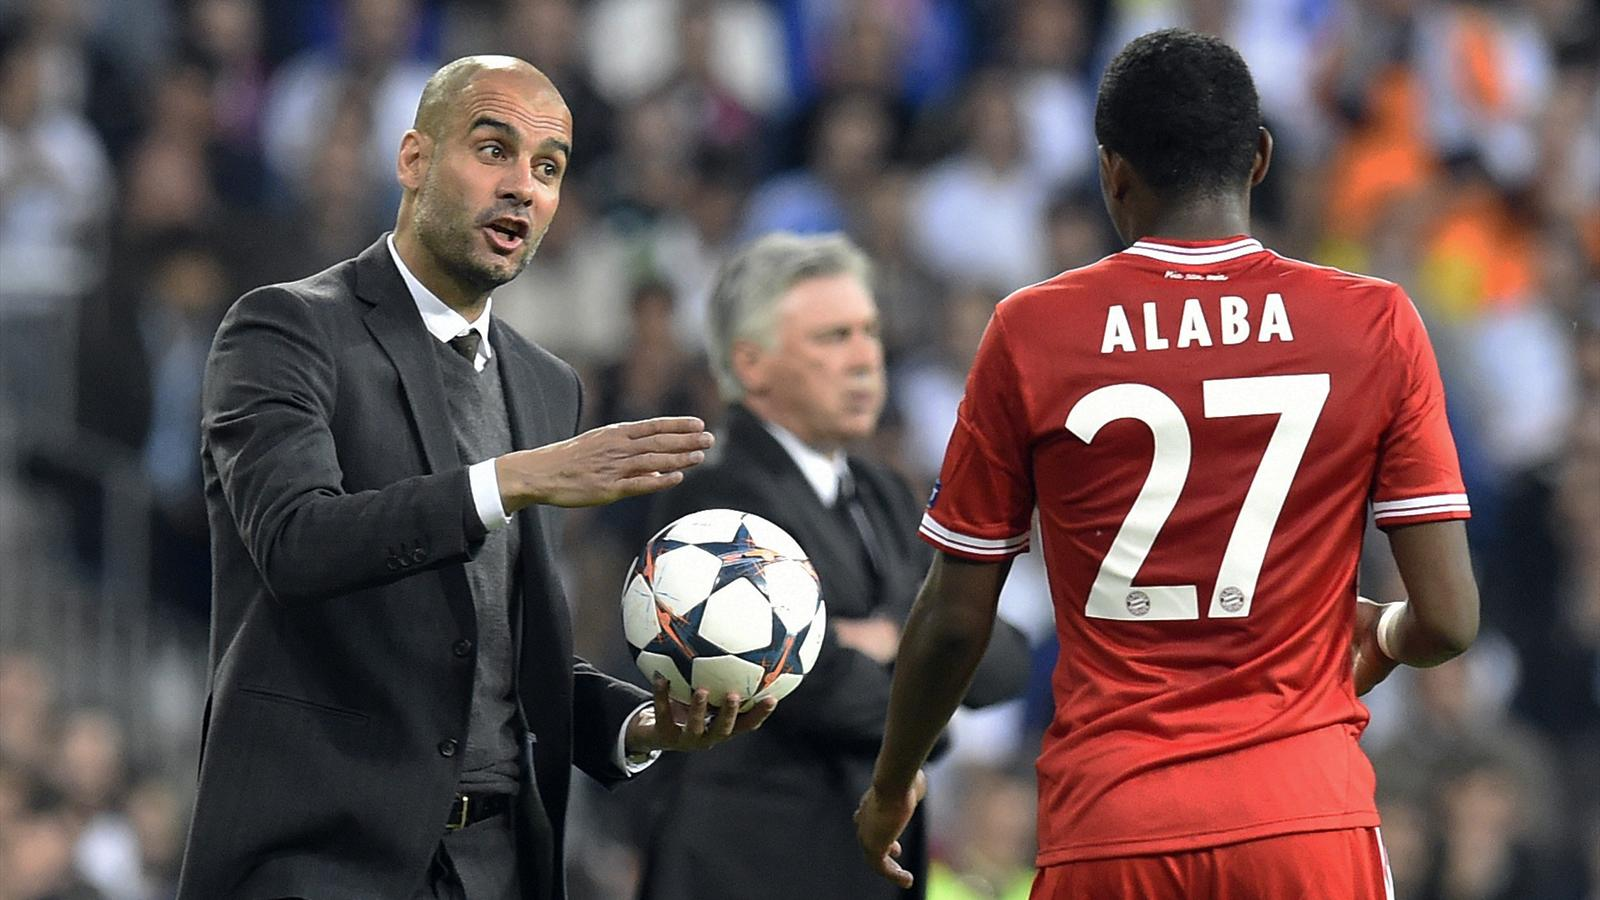 Bayern Munich's Spanish head coach Pep Guardiola (L) gives instructions to Bayern Munich's Austrian midfielder David Alaba